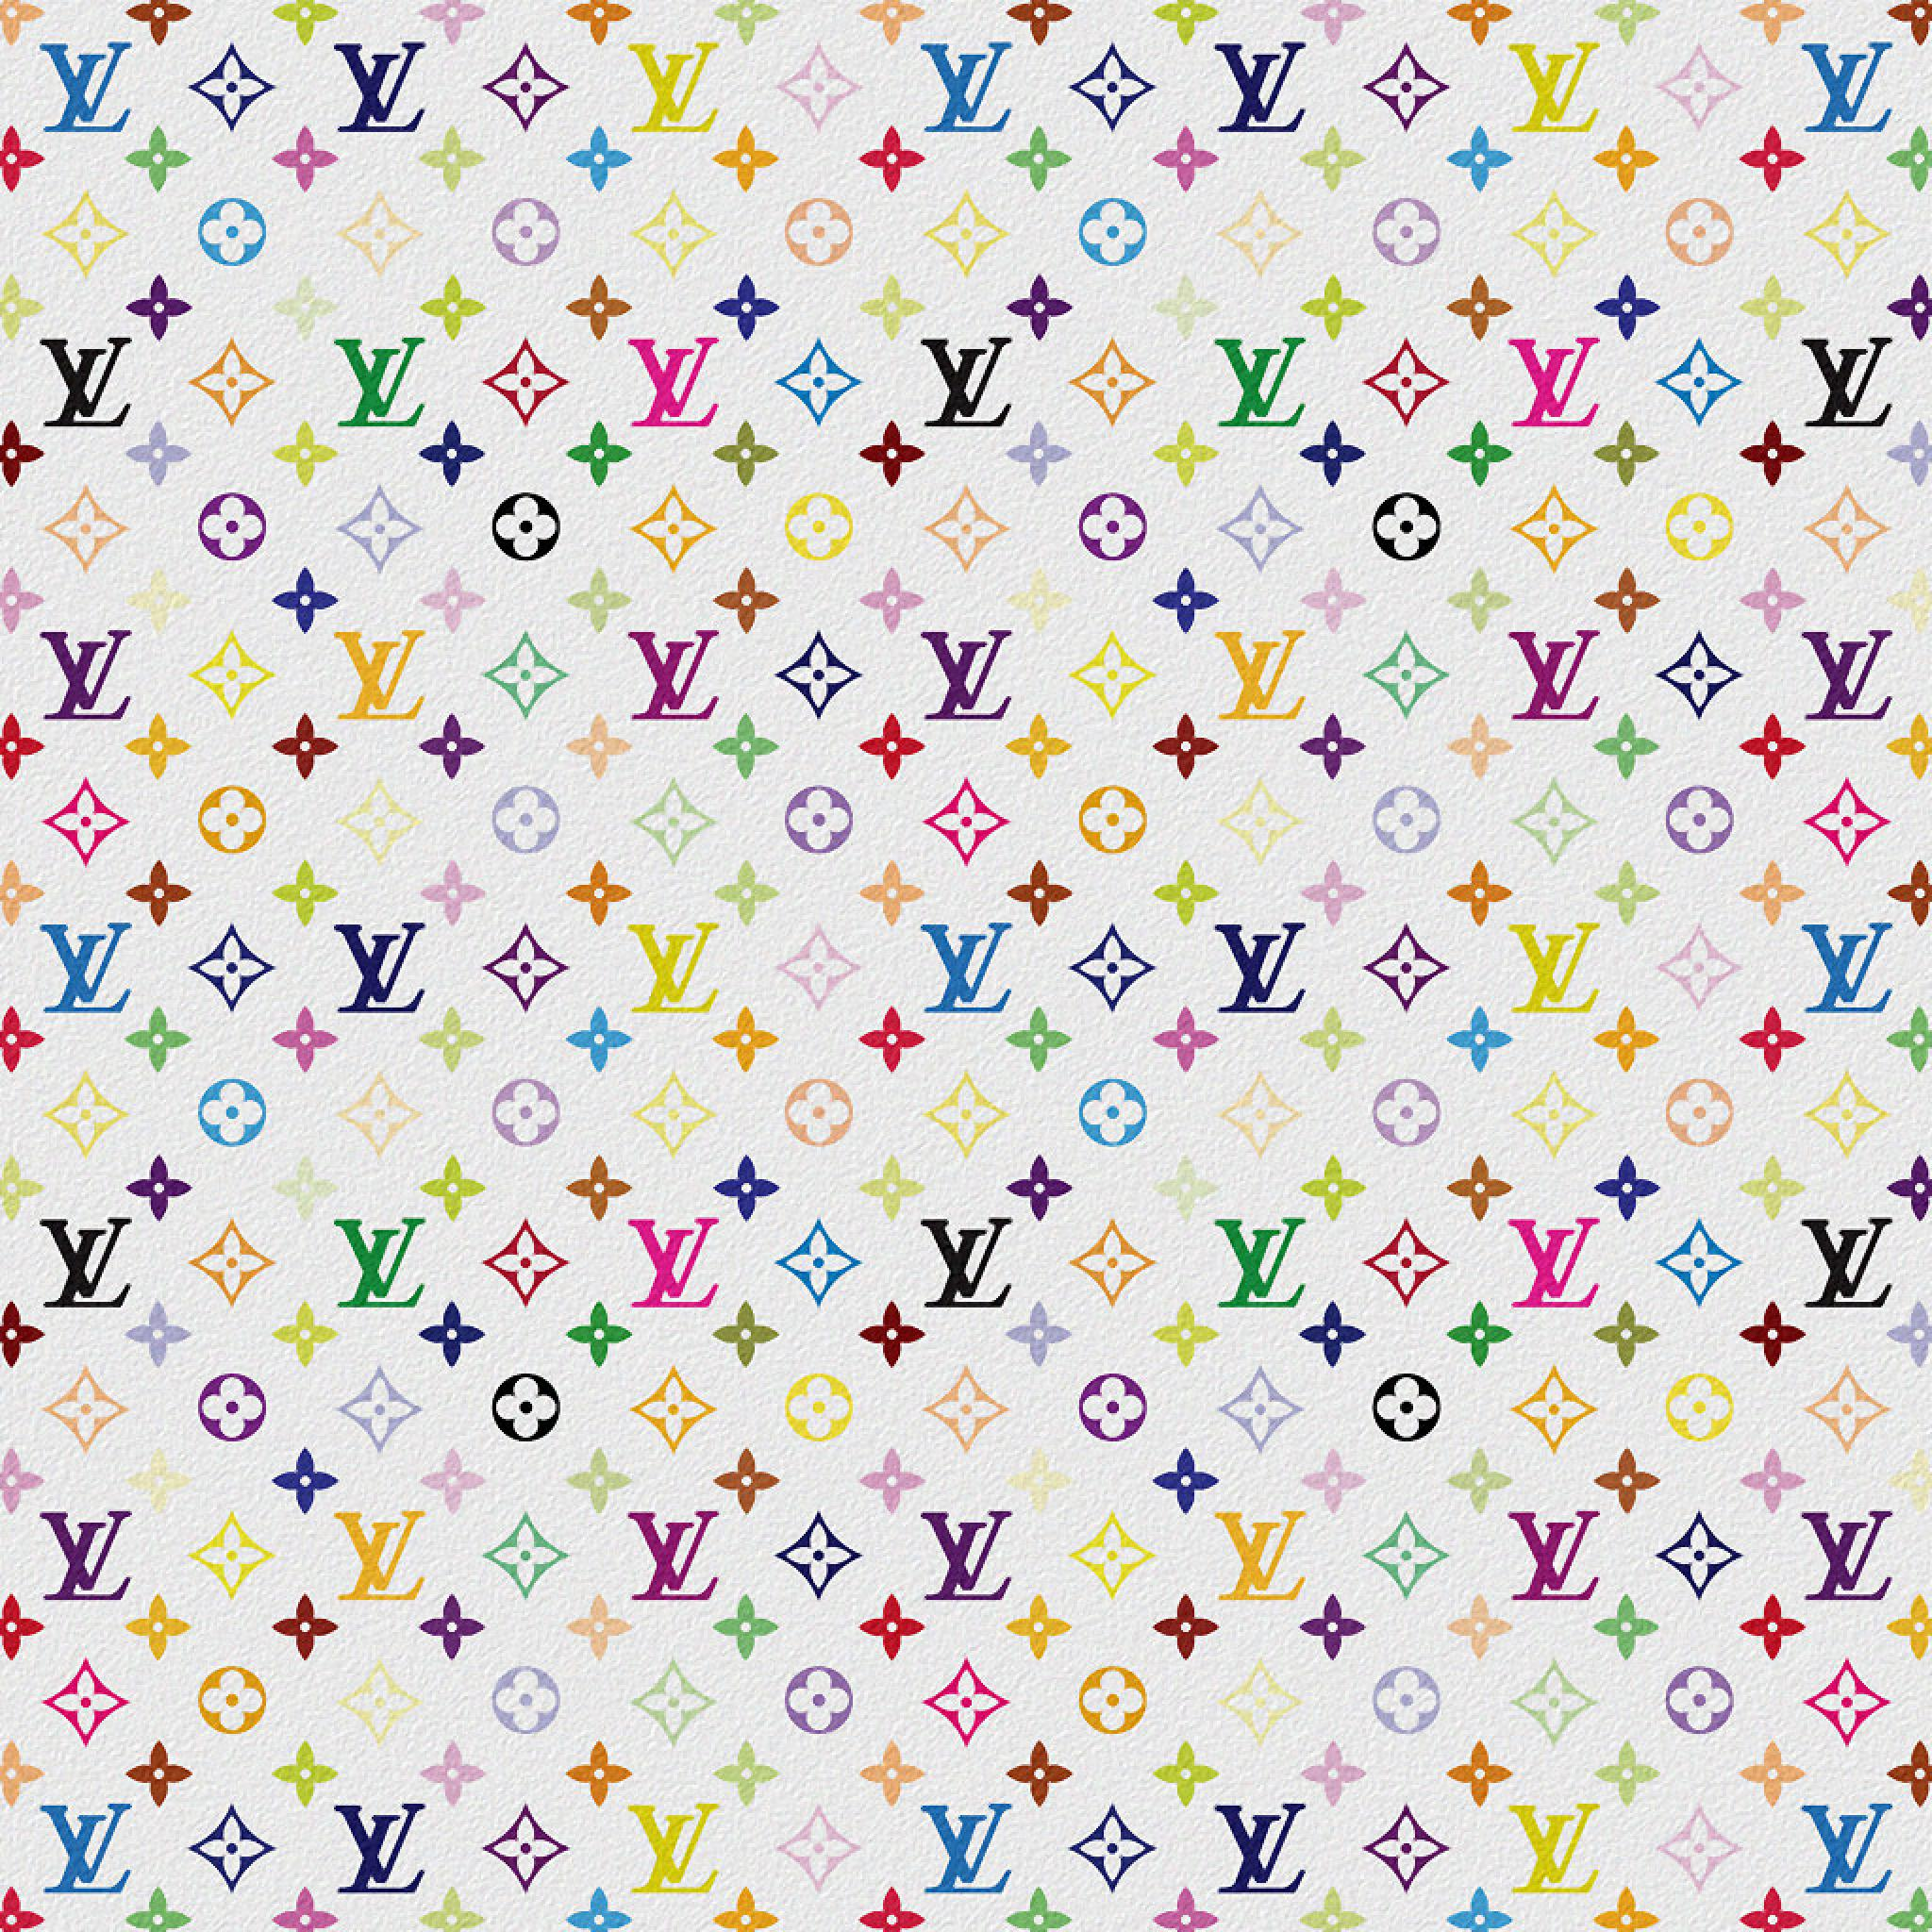 Monogram Iphone Wallpaper App Backgrounds Louis Vuitton Multicolor White Ipad Iphone